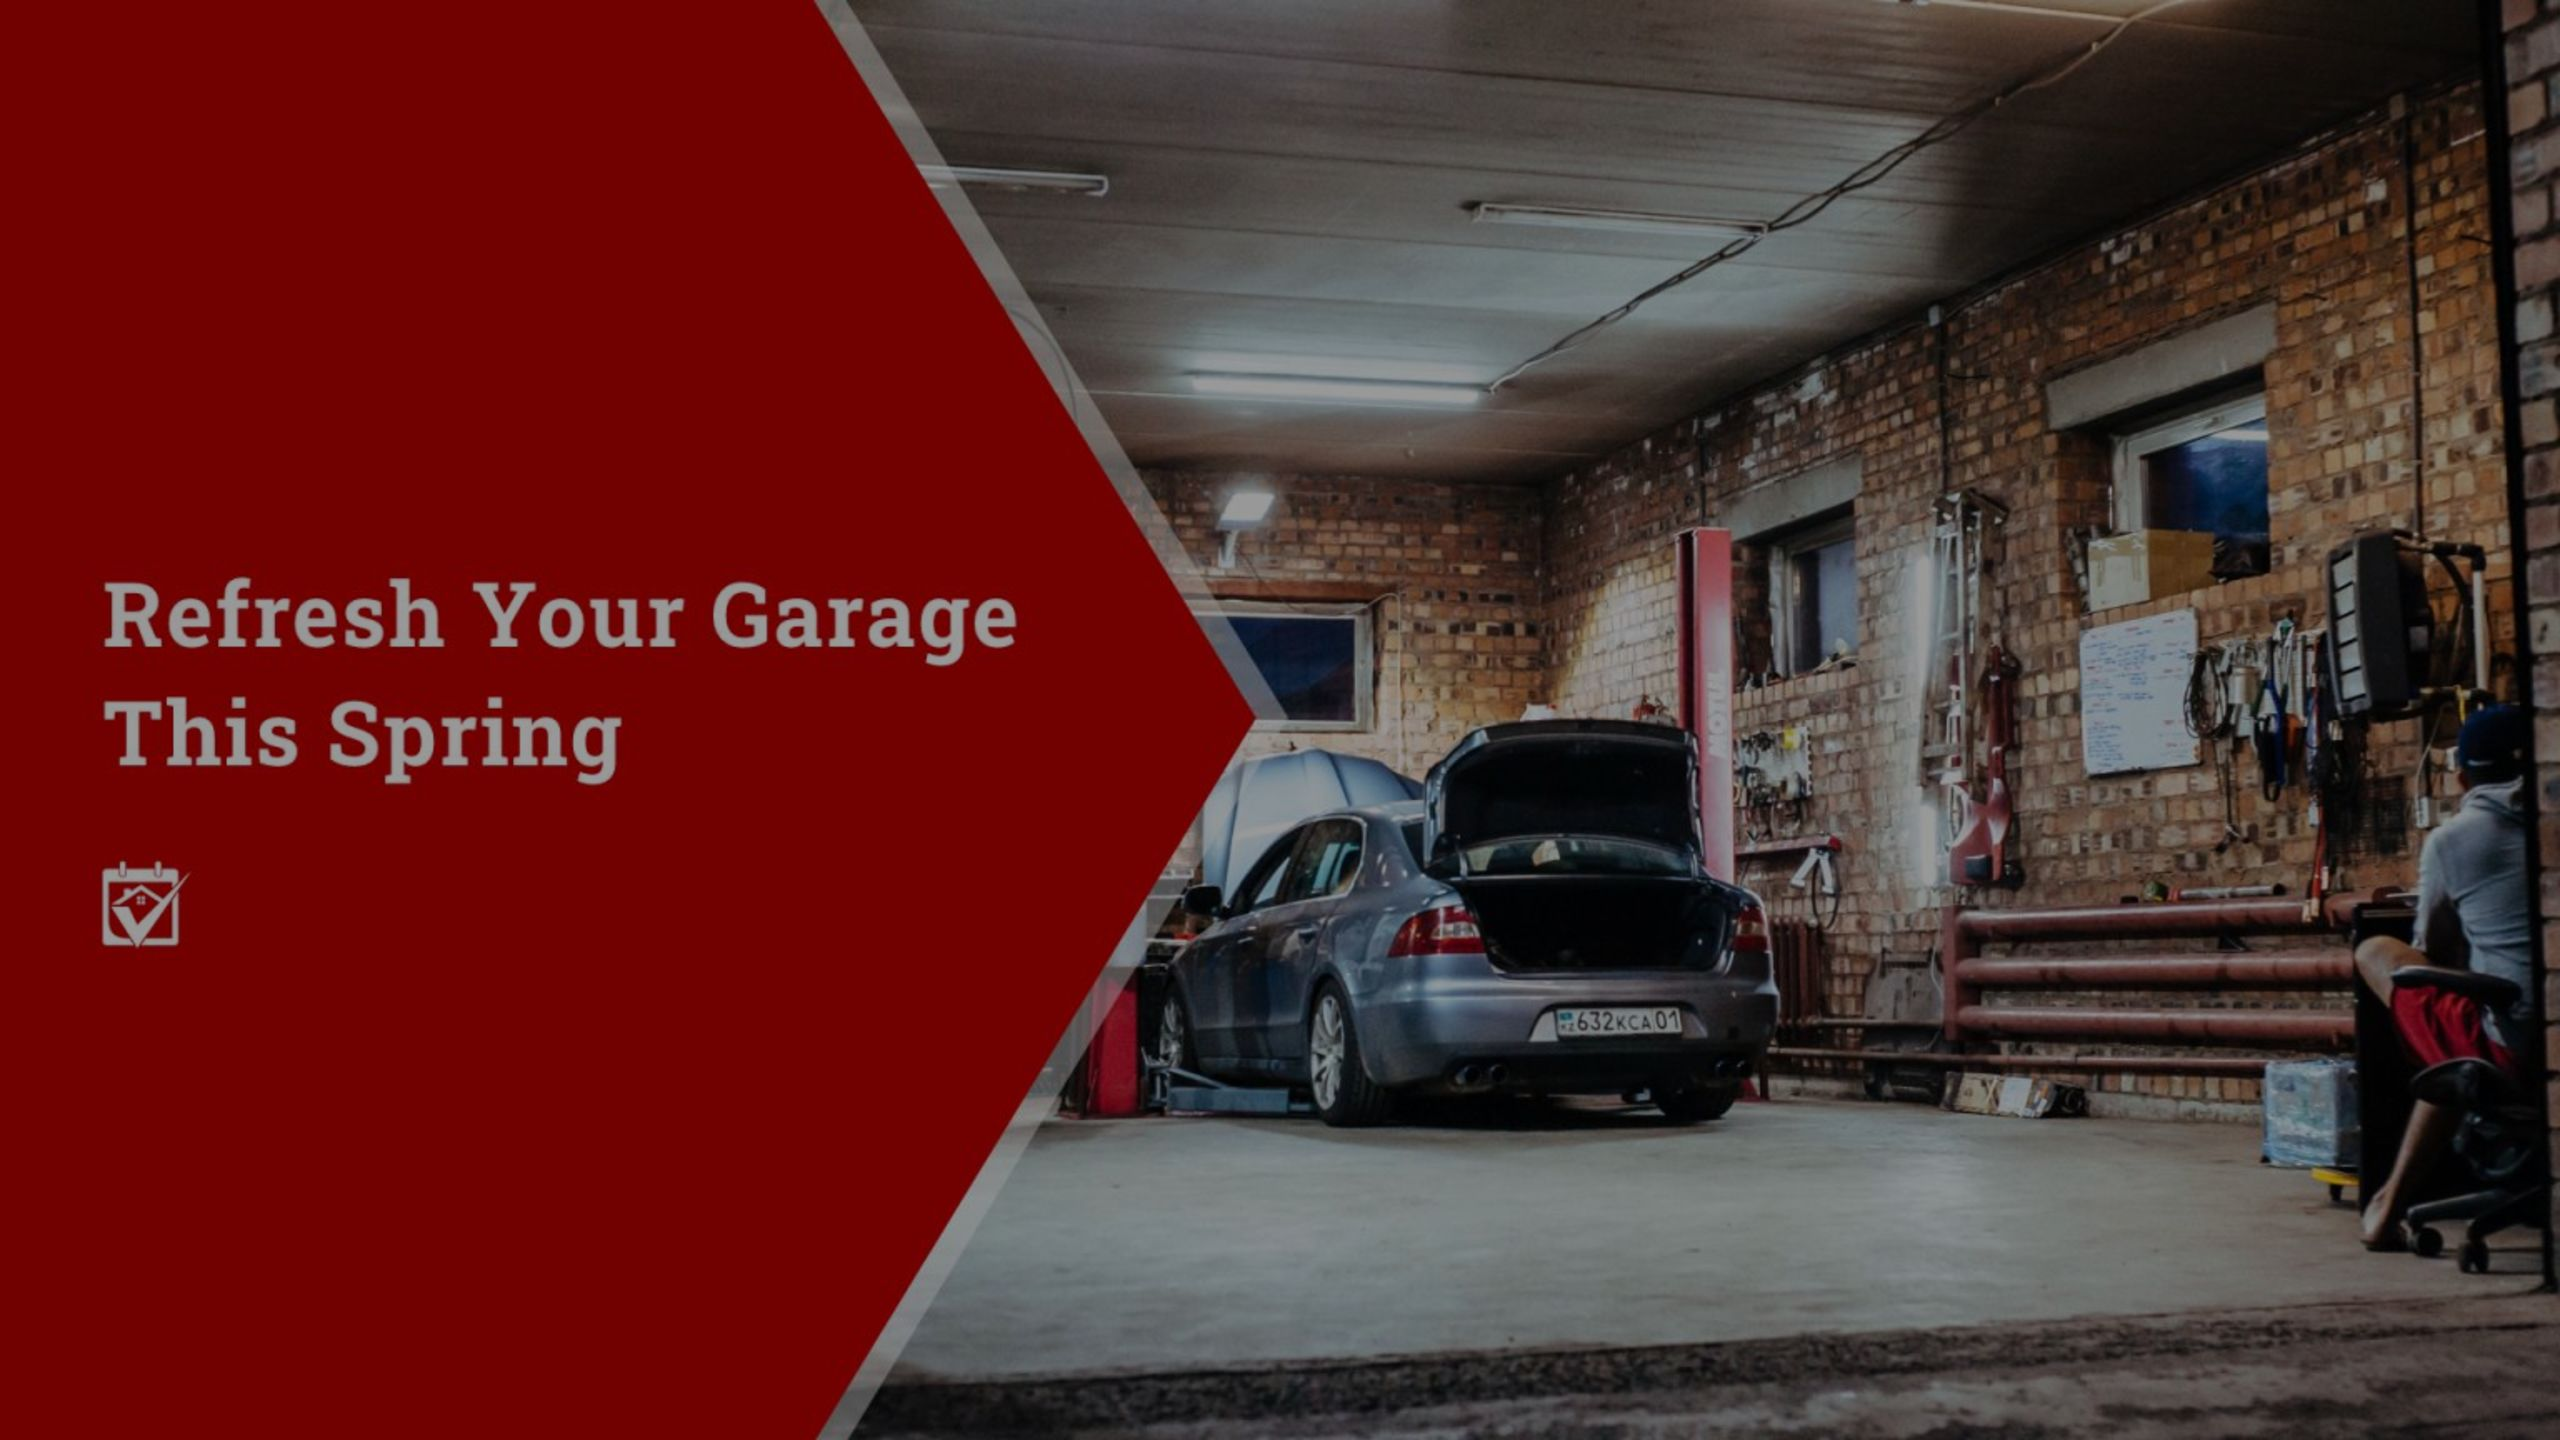 Refresh Your Garage This Spring